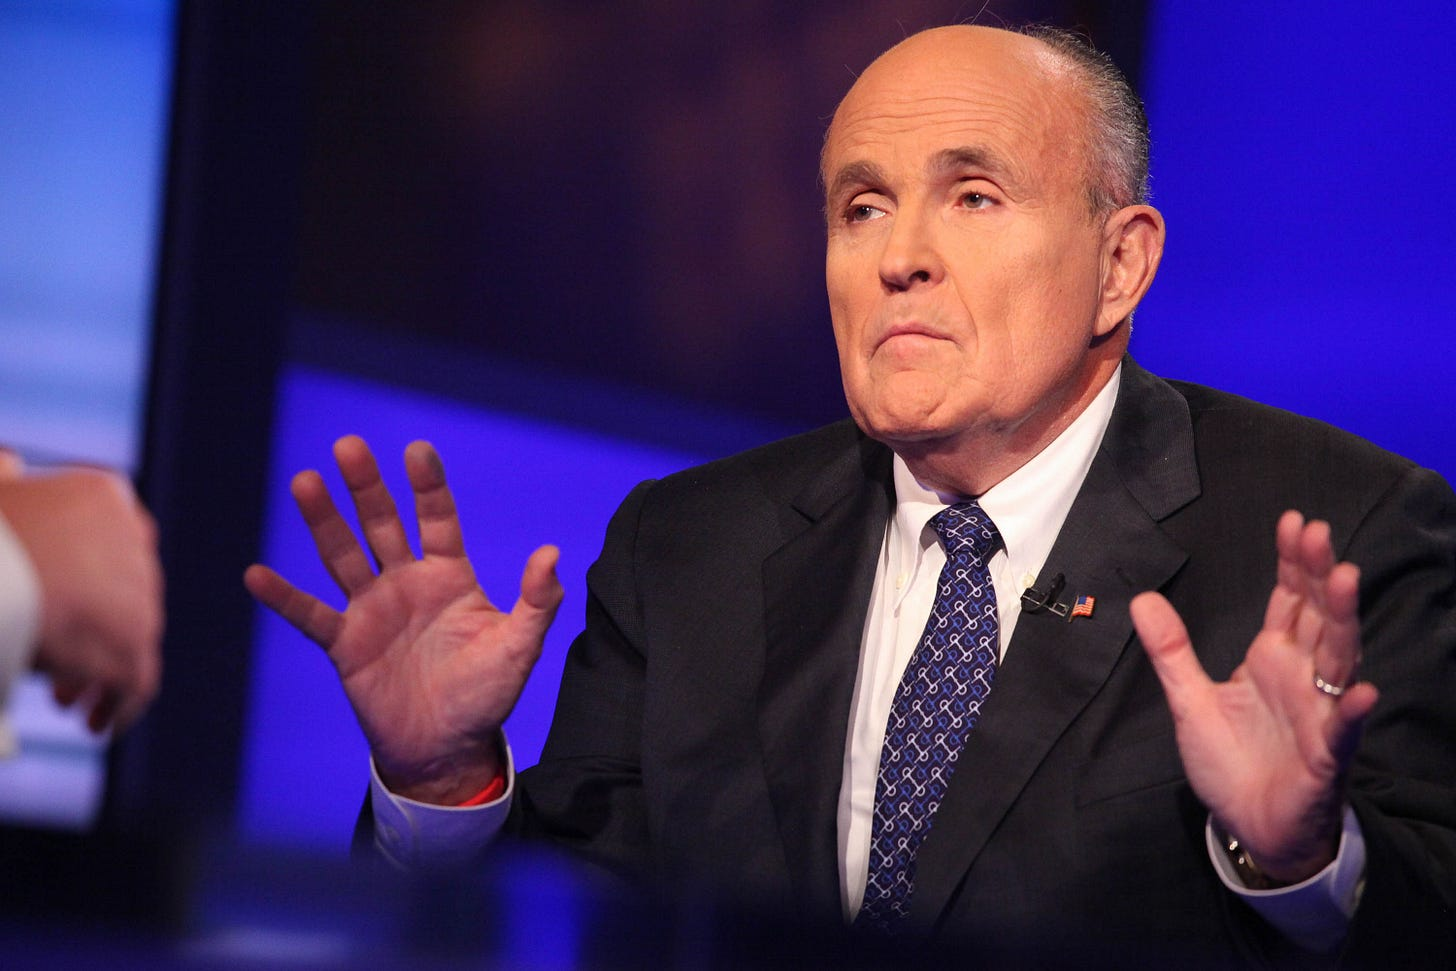 Rudy Giuliani on Trump Tape: 'Talk & Actions Are Two Different Things'    Fortune